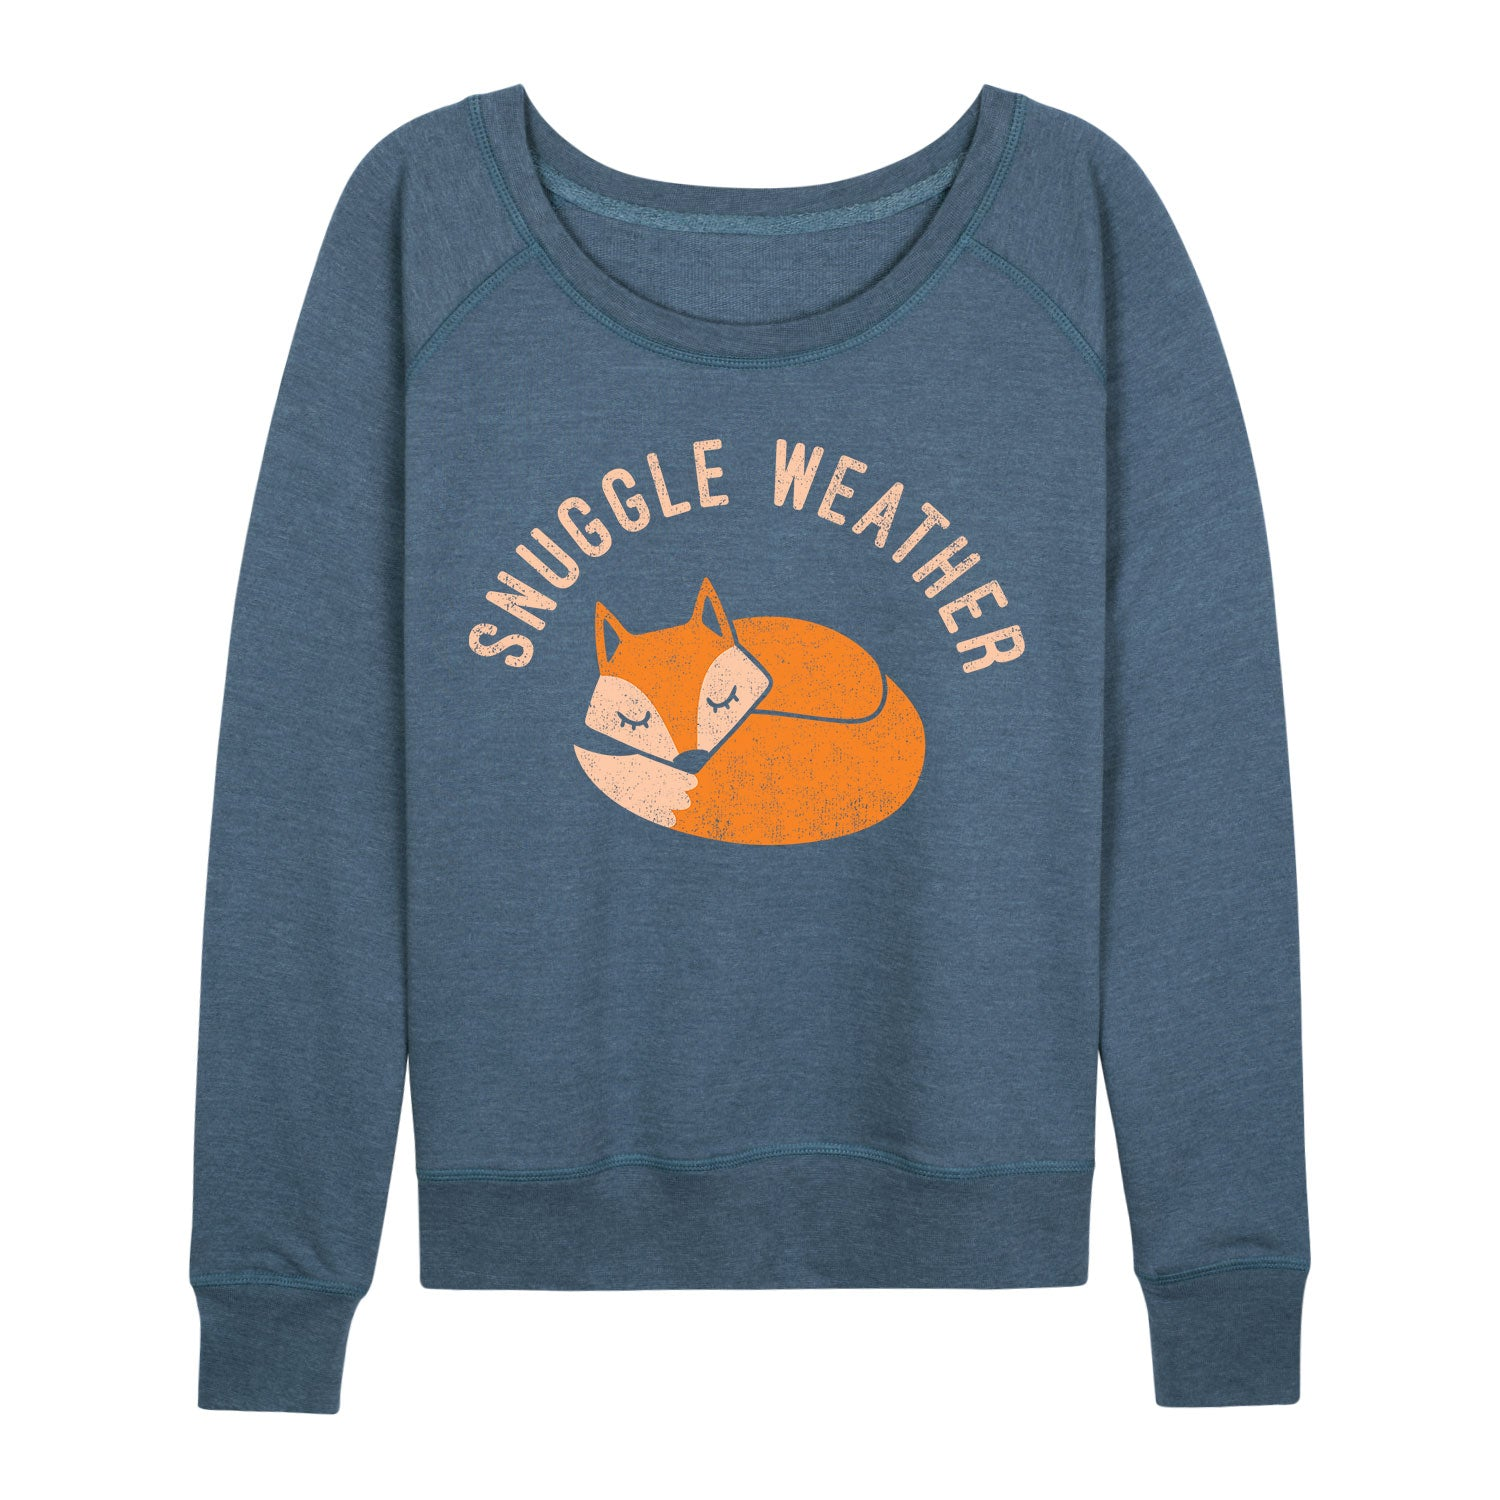 Snuggle Weather - Women's Slouchy